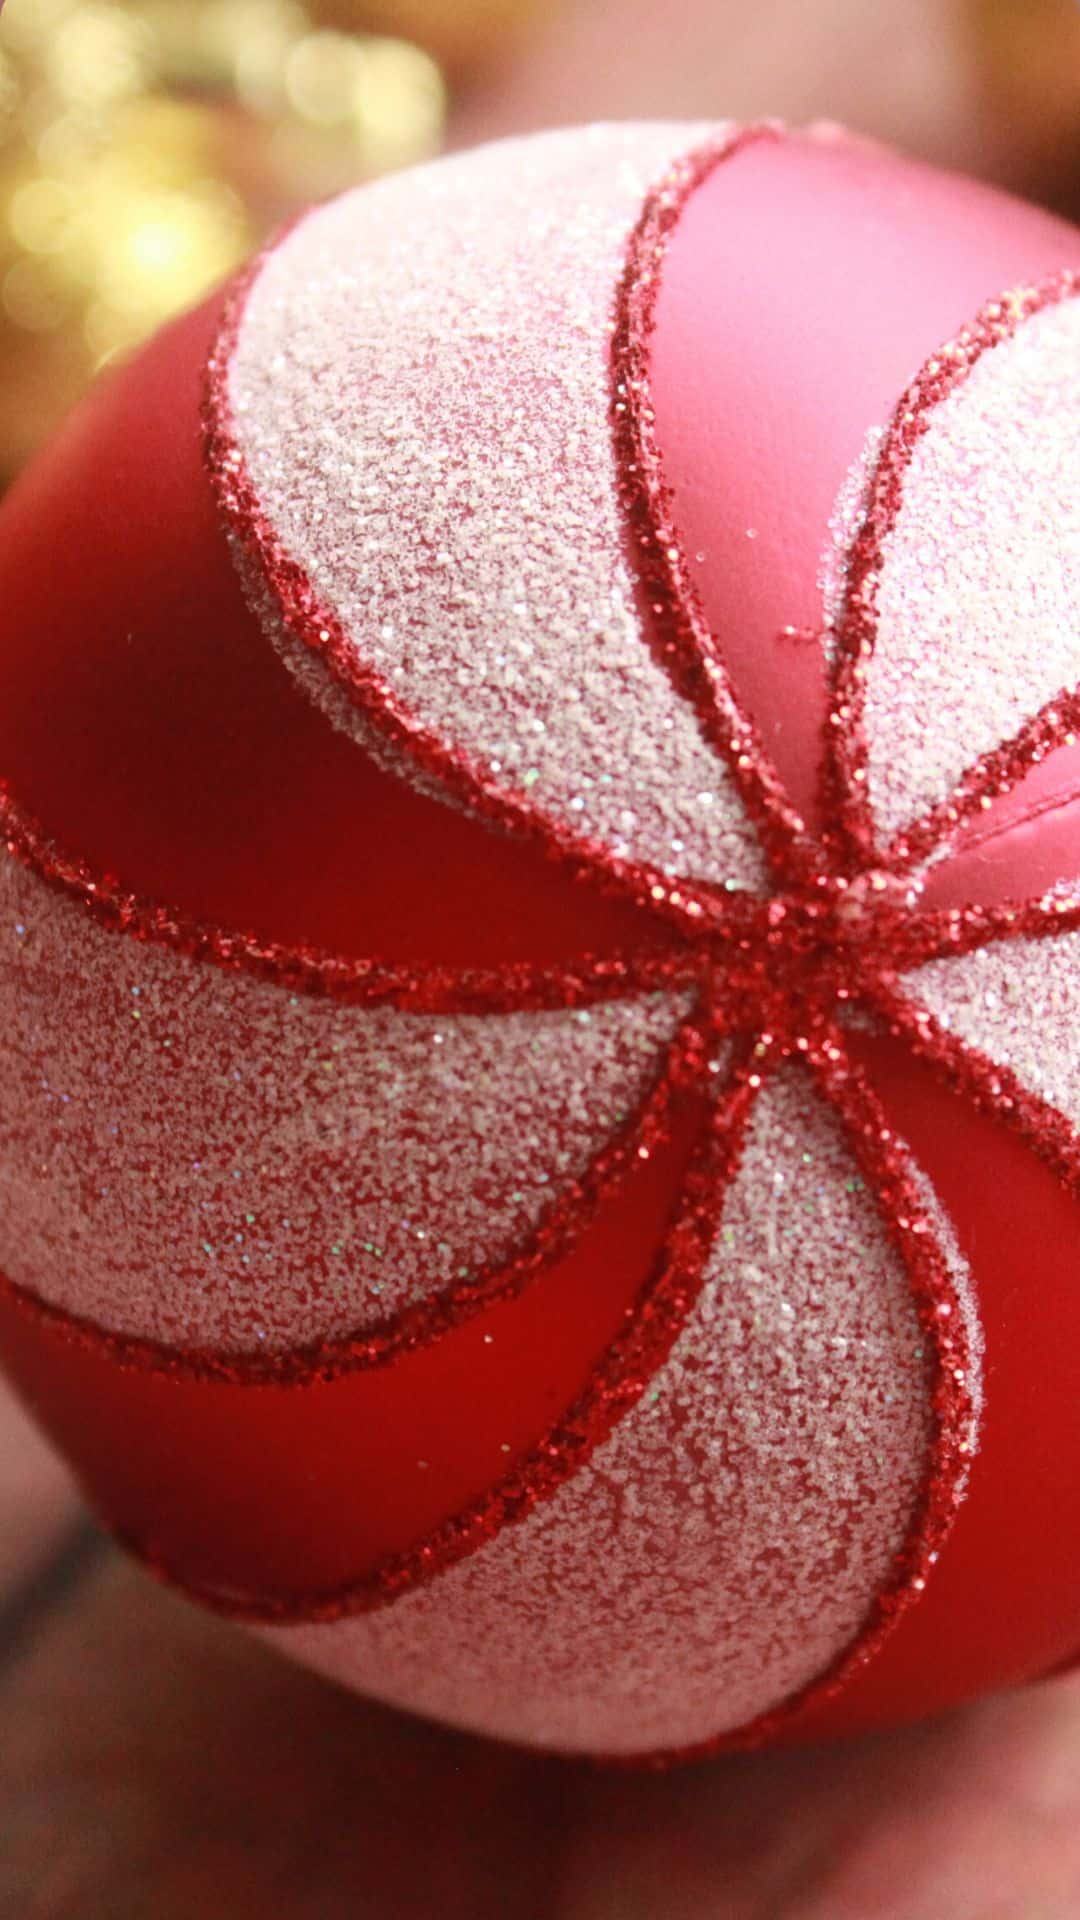 Cozy Christmas Backgrounds For iPhone Wallpaper Can Cane Large Ornament